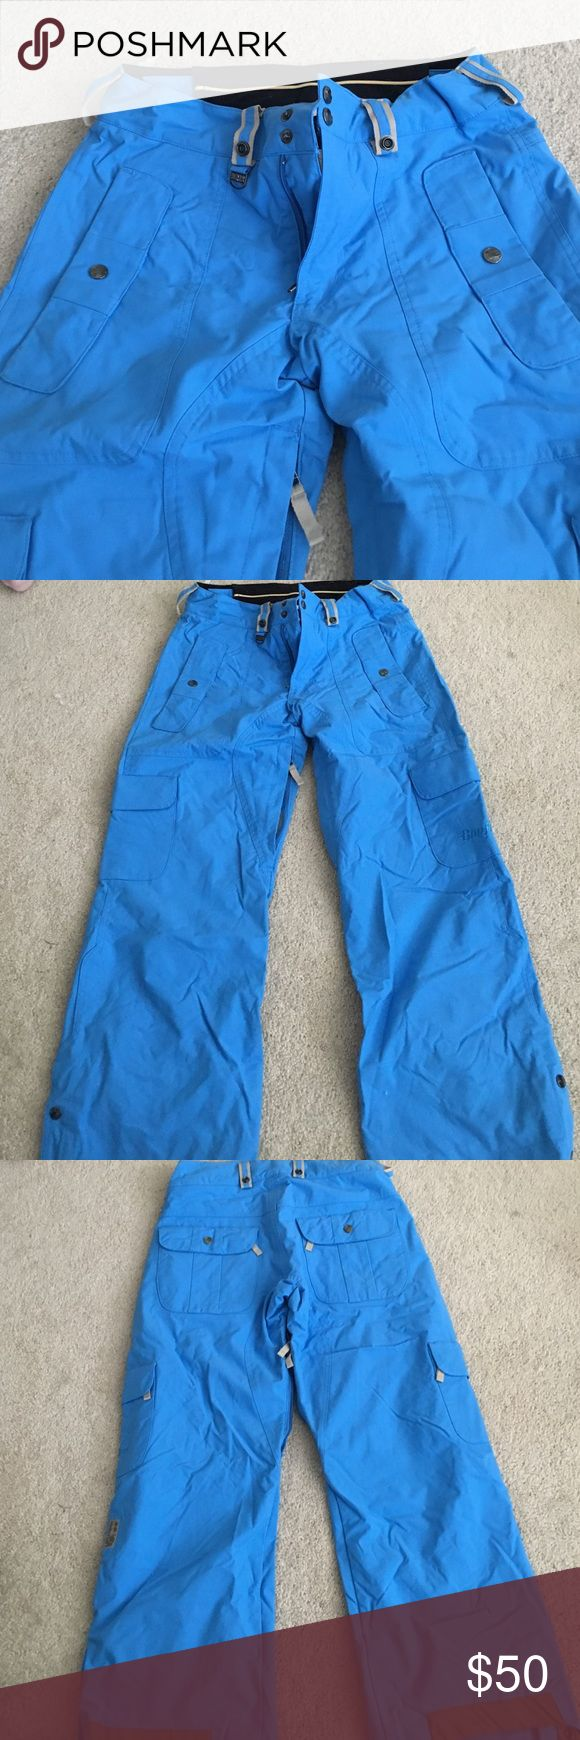 Bonfire snowboarding/ski pants Bonfire classic fit women's S/m ski pants , great condition only worn a few times fully lined also has inside and outside pockets and adjustable Velcro waistband and snaps at bottom to fit around larger ski or snowboard boots, bonfire is the brand, open to all offers Burton Pants